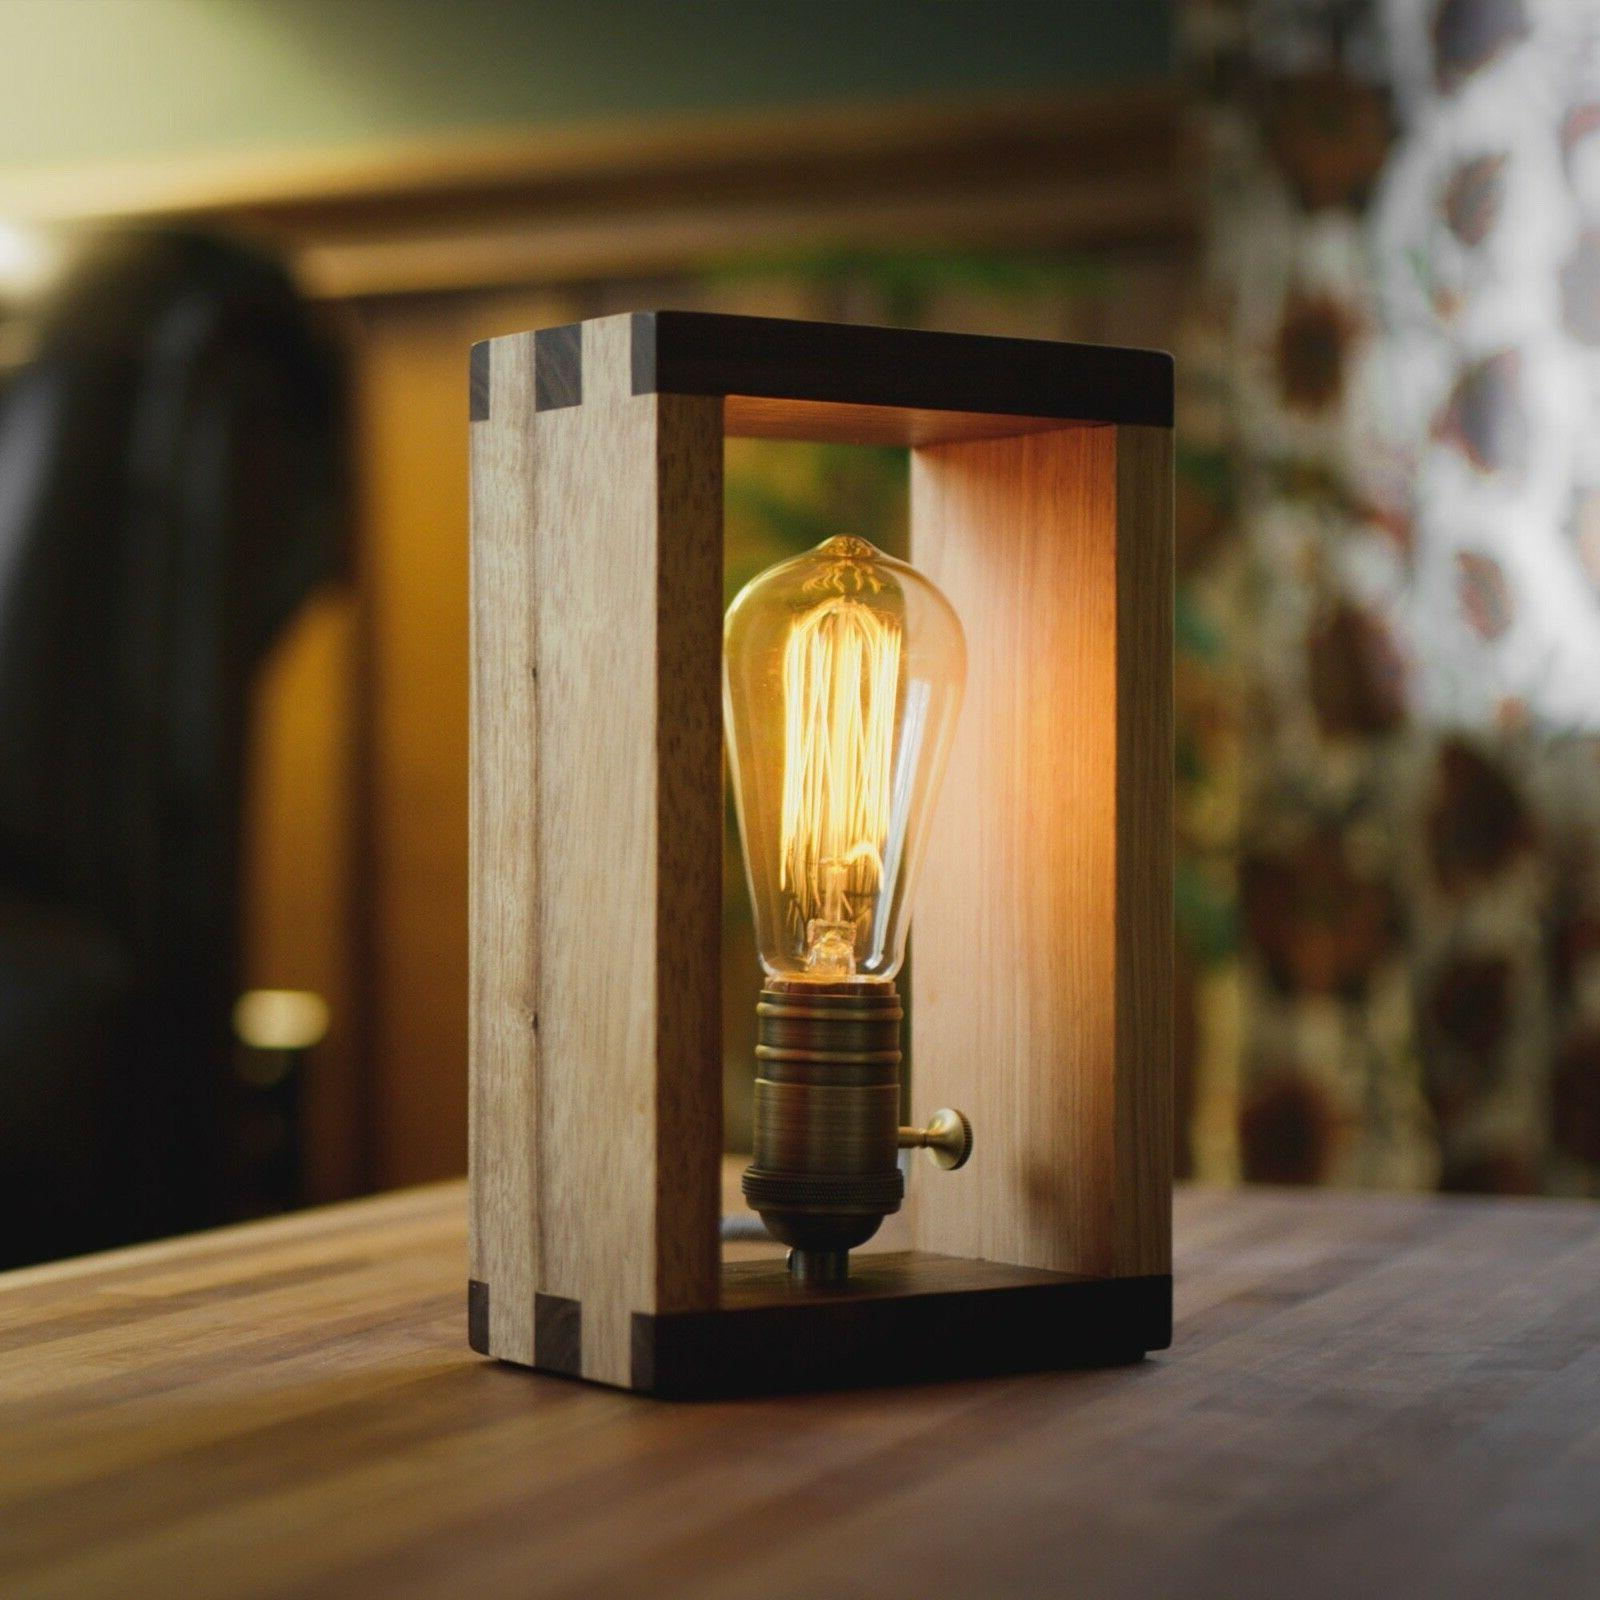 The Alto Wood Dimmable Shadow Box Accent Desk Lamp by